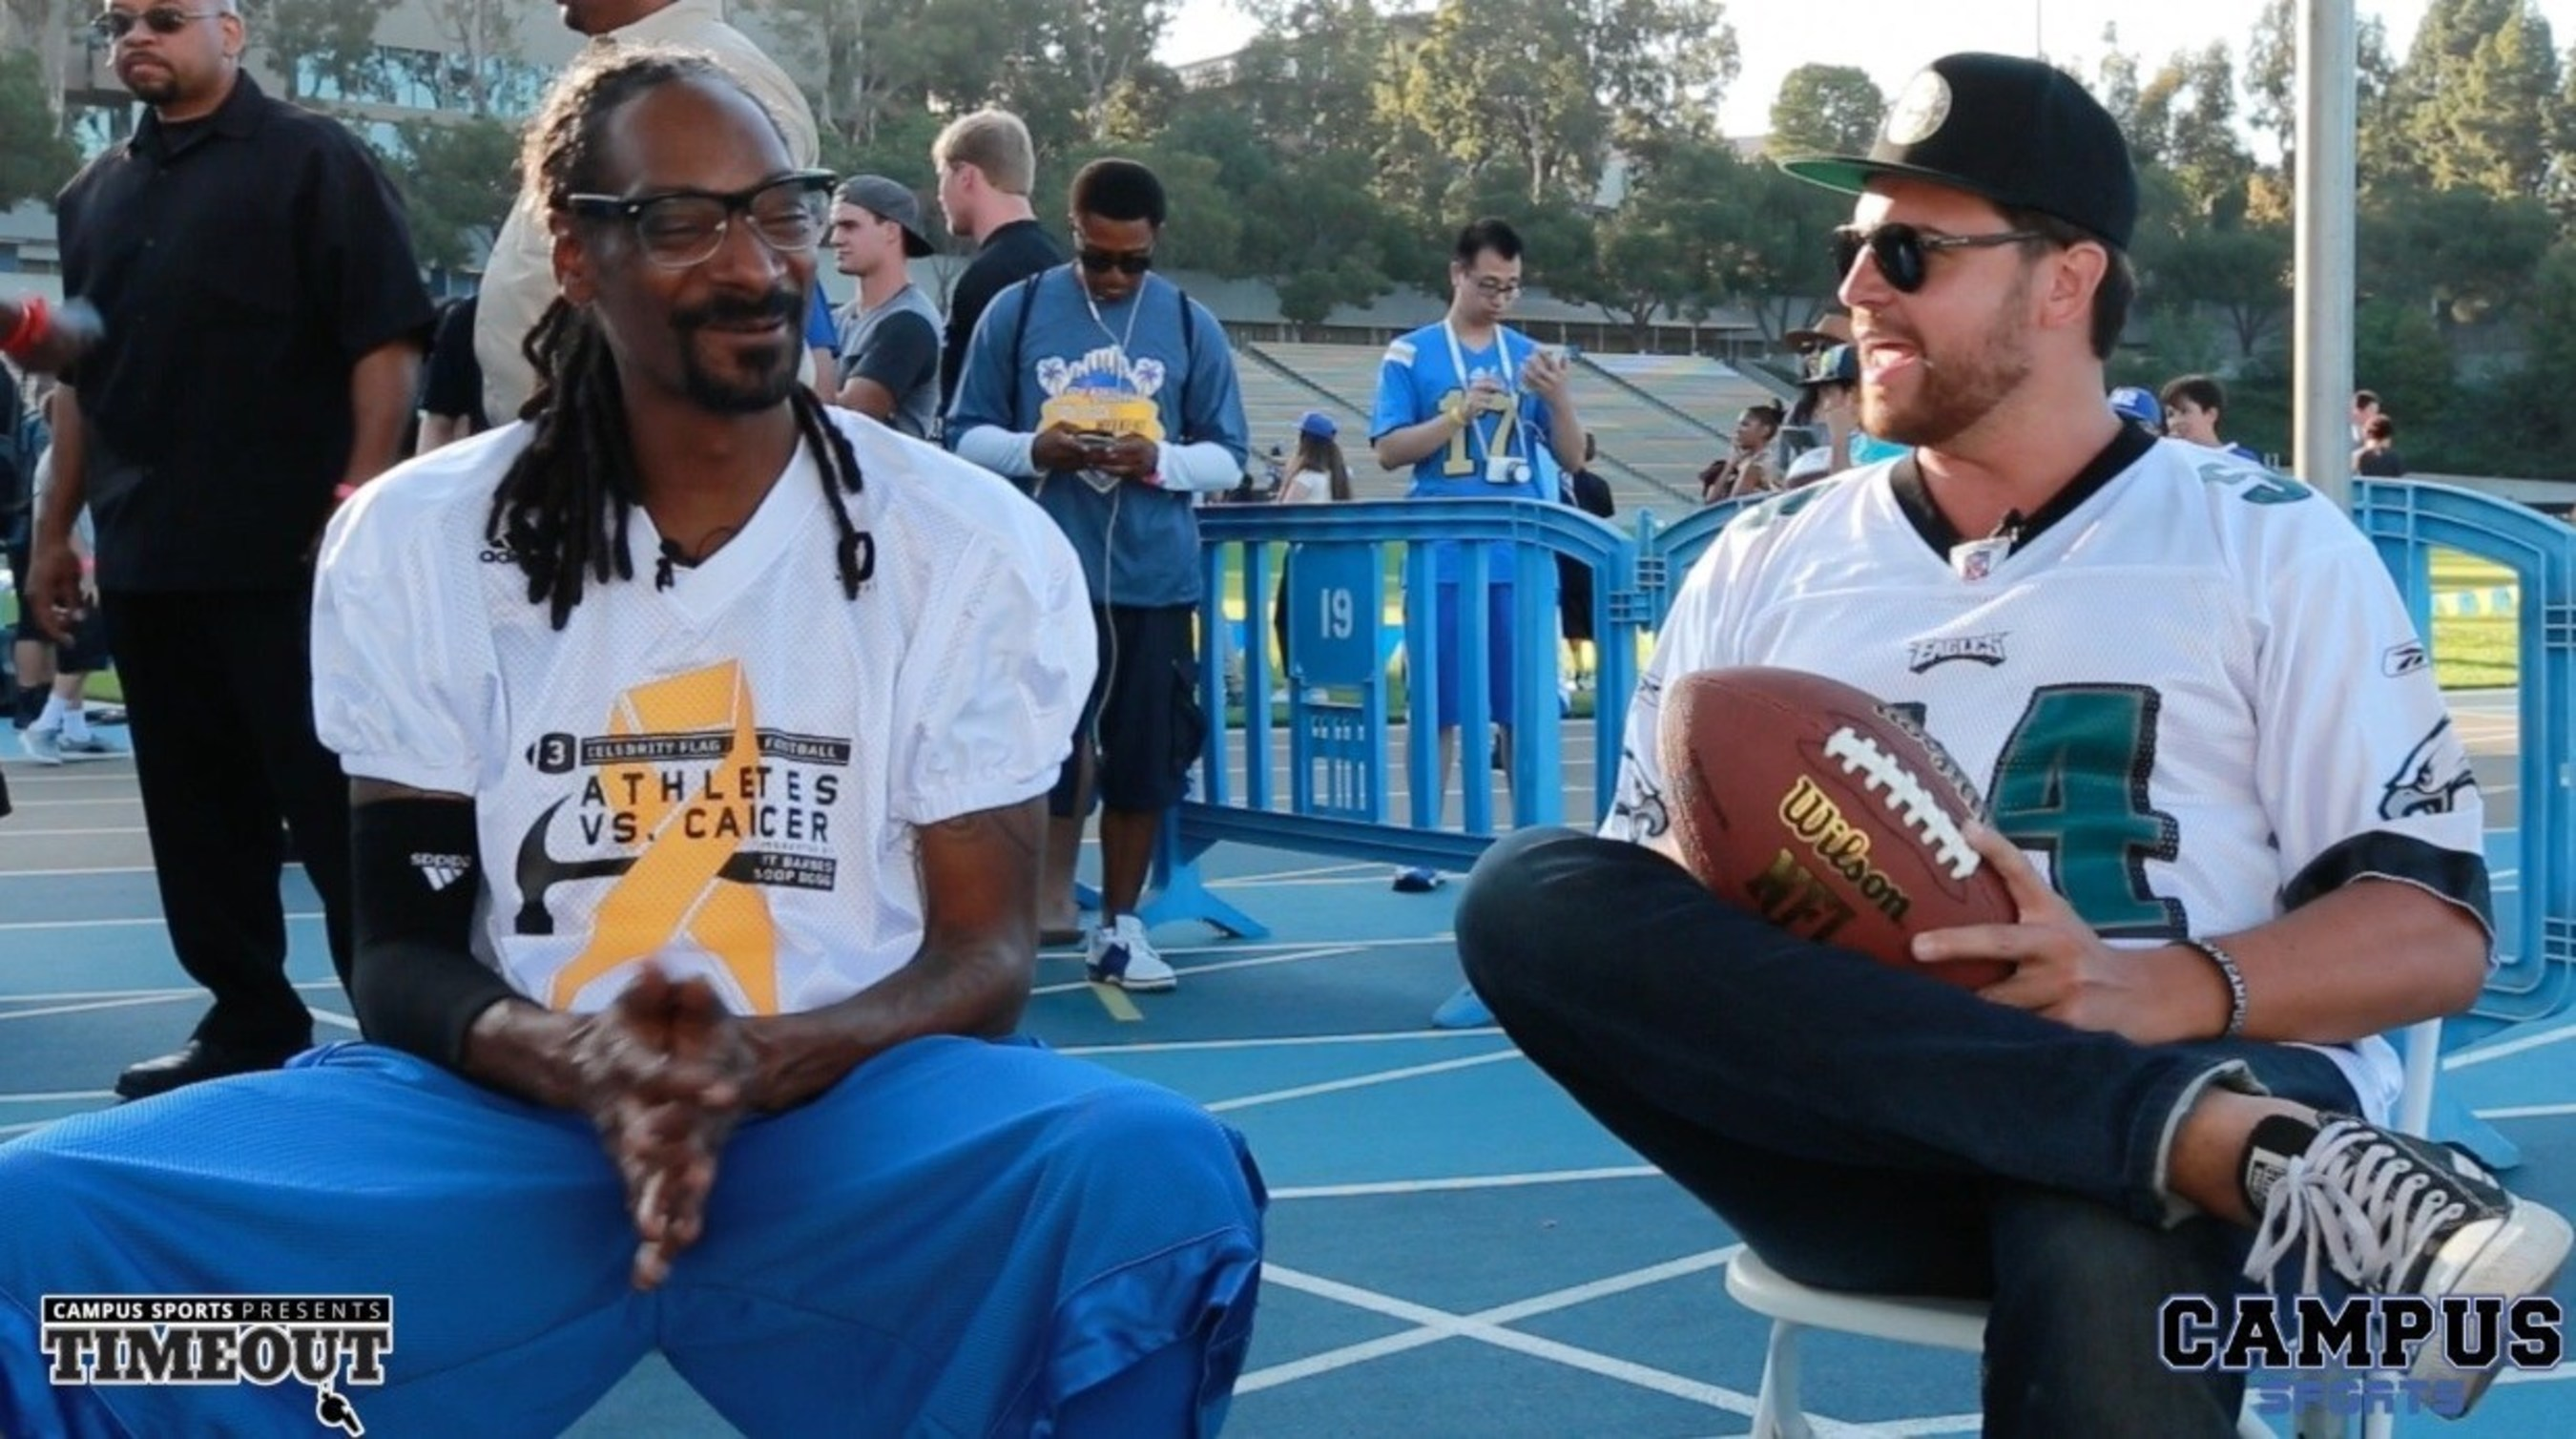 Snoop Dogg Interviews for CampusSports.net on His Son Quitting UCLA Football, and More